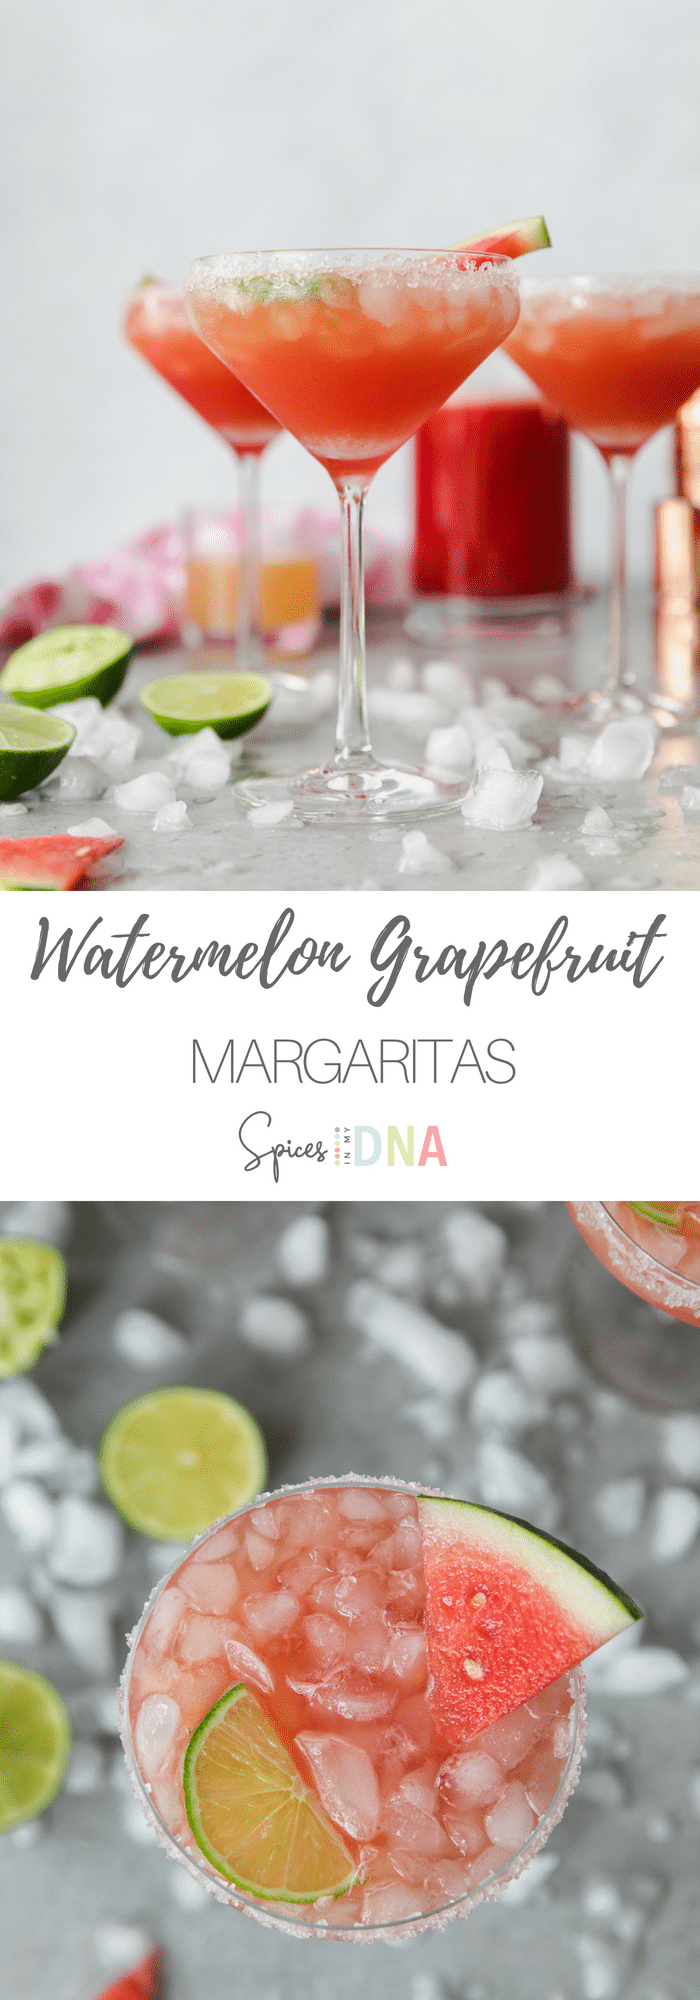 These Watermelon Grapefruit Margaritas are made with fresh watermelon juice, freshly squeezed grapefruit juice, lime juice, tequila (obviously), orange liqueur, and a touch of simple syrup for sweetness! Such a perfect, refreshing summertime cocktail! #margarita #watermelon #grapefruit #cocktail